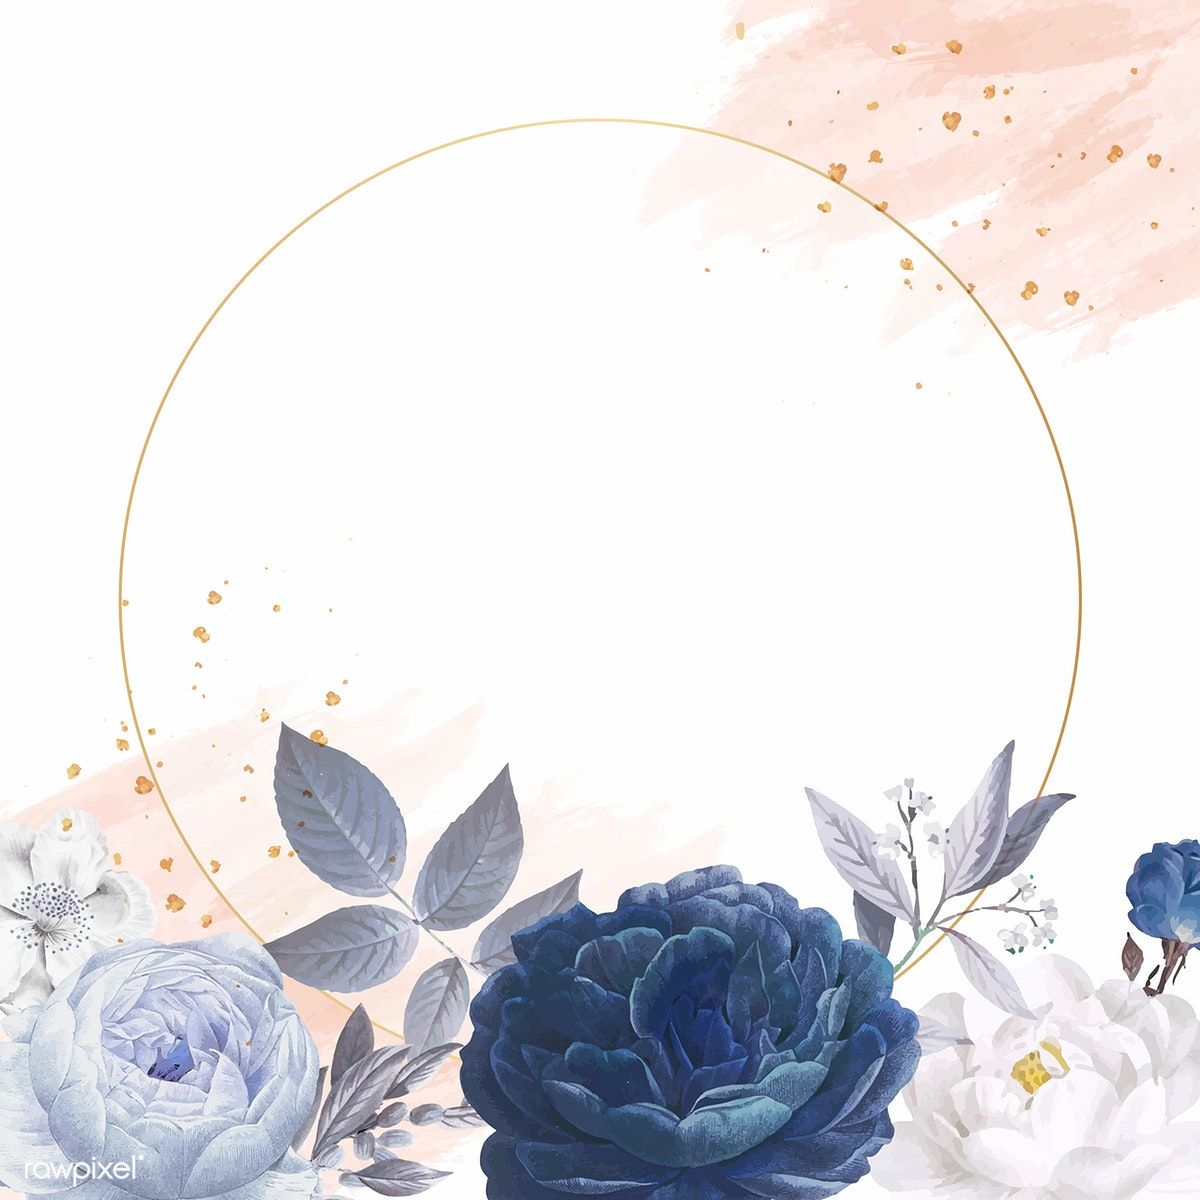 Blue Roses Themed Card Template Vector Free Image By Rawpixel